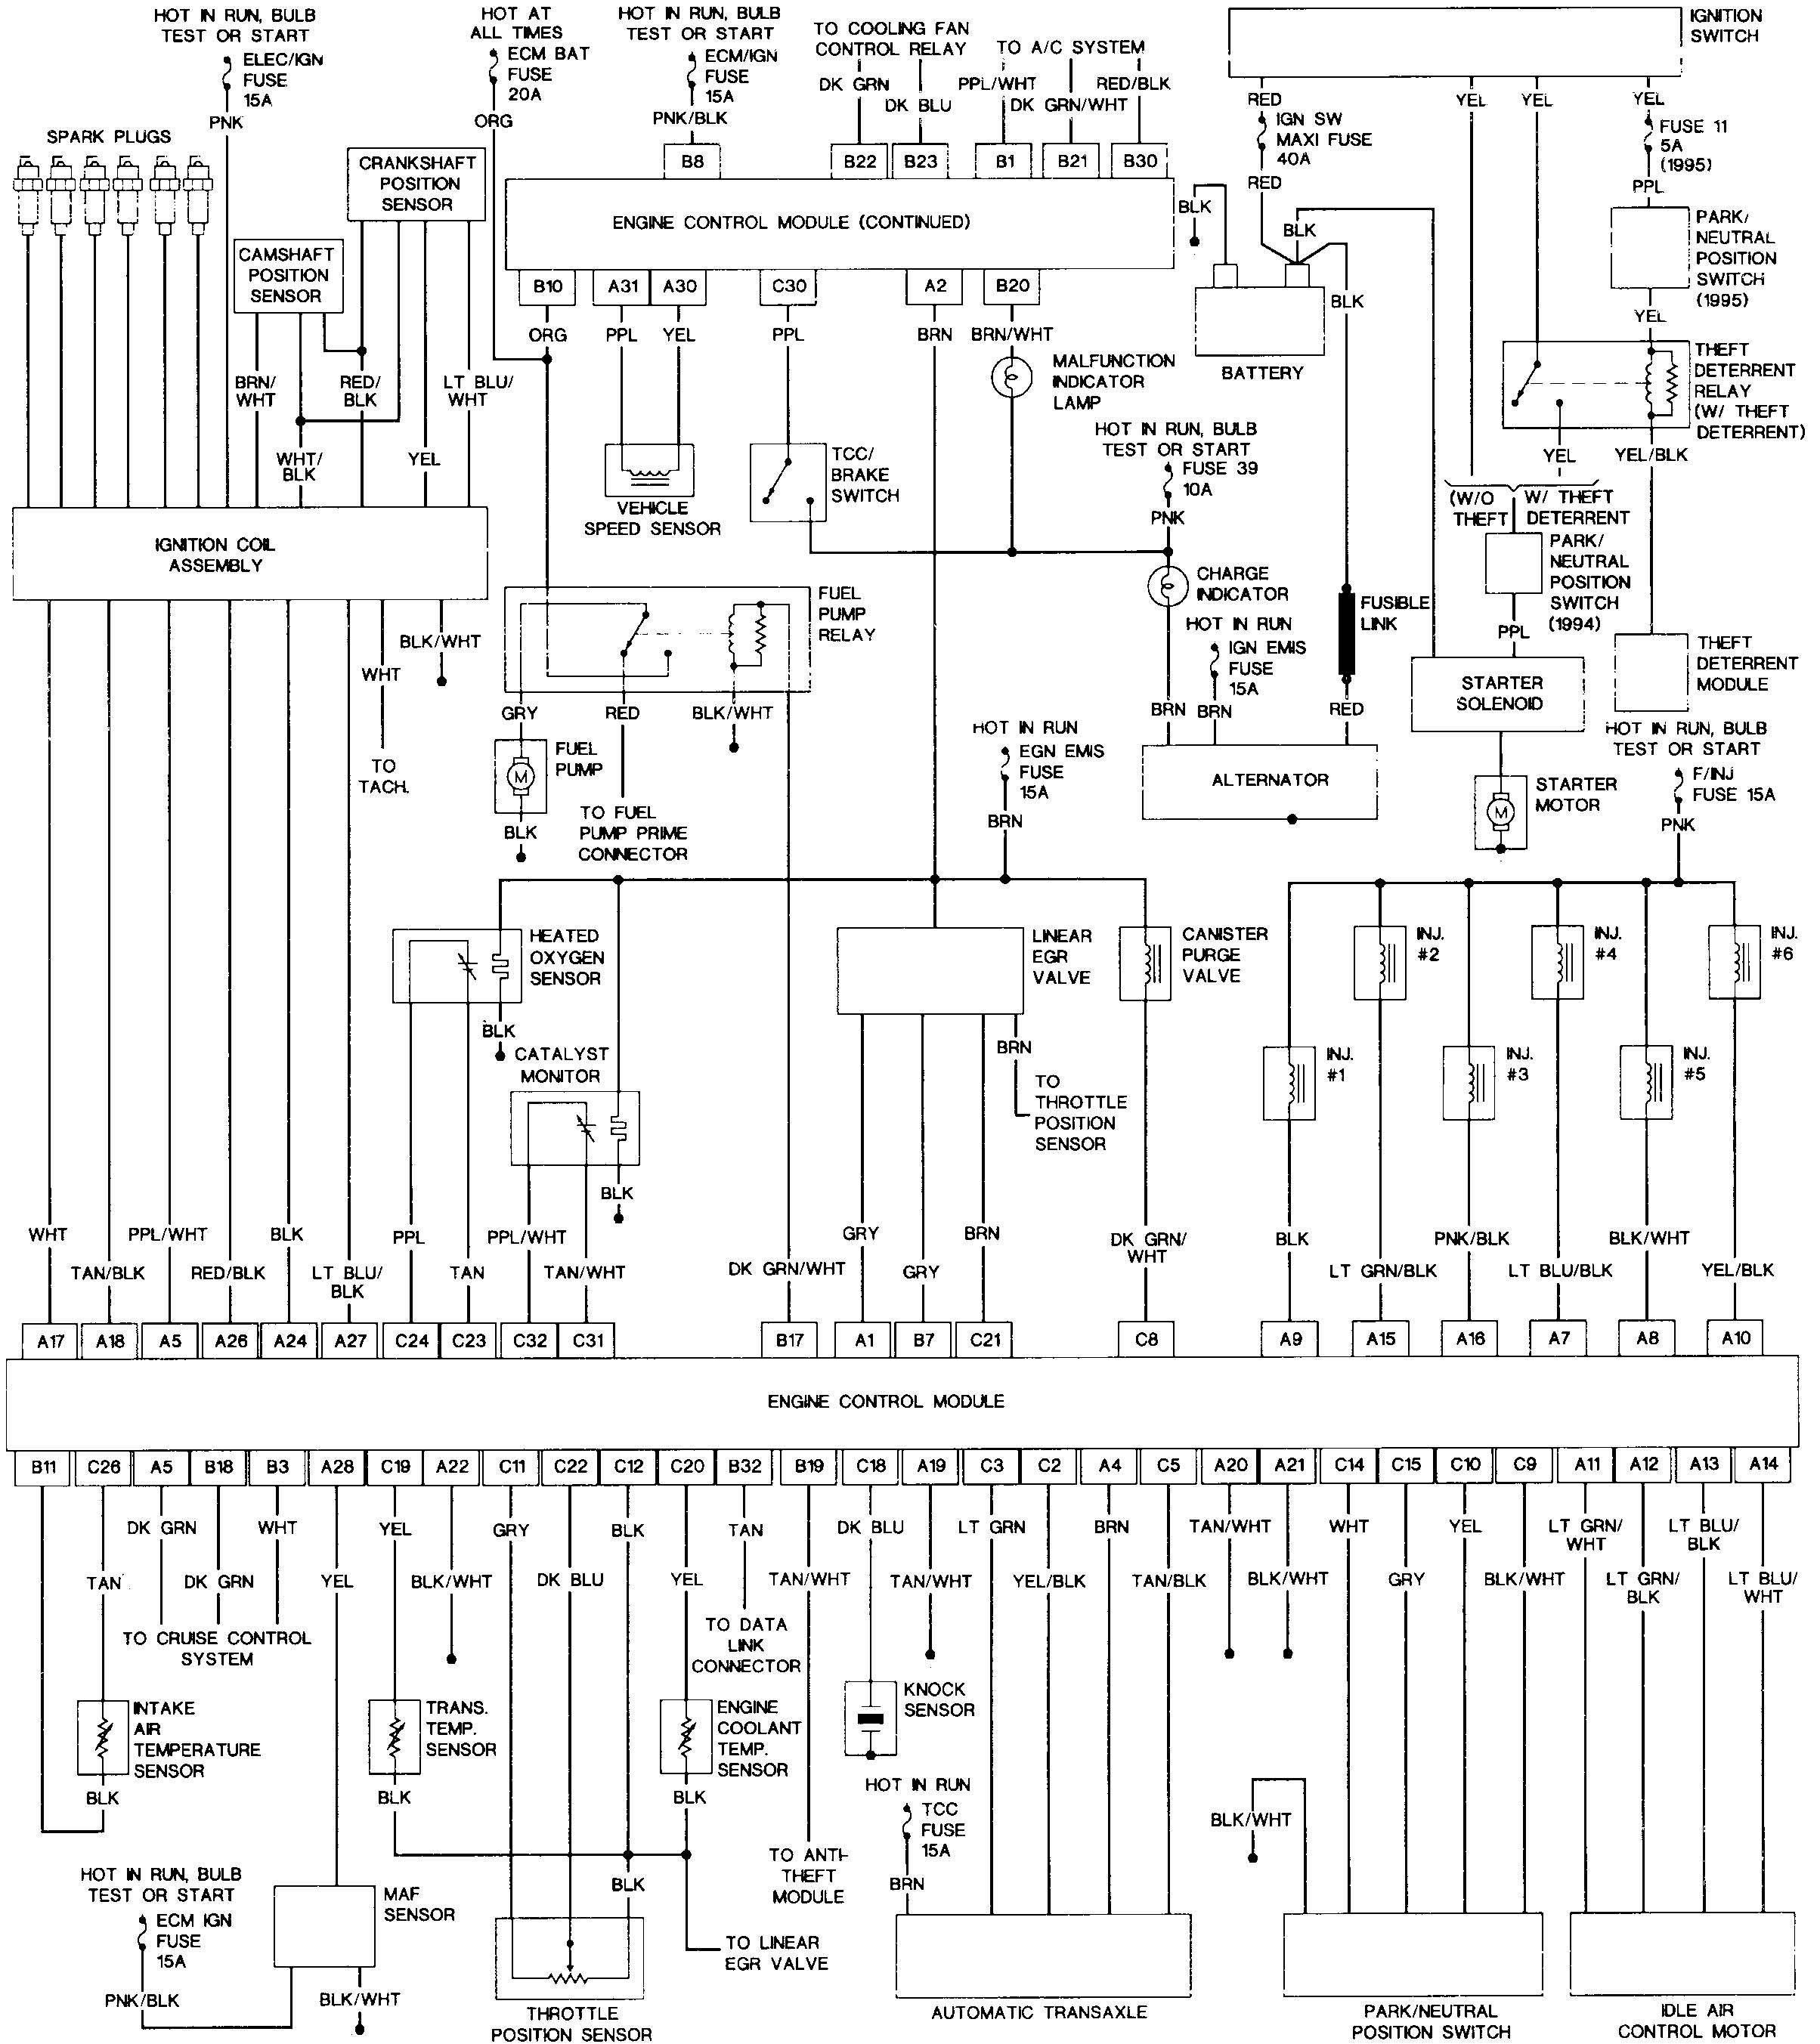 2002 Jeep Grand Cherokee Engine Diagram 2 Unique 2004 Jeep Grand Cherokee Cooling Fan Wiring Diagram Of 2002 Jeep Grand Cherokee Engine Diagram 2 2005 Jeep Grand Cherokee Trailer Wiring Diagram Collection